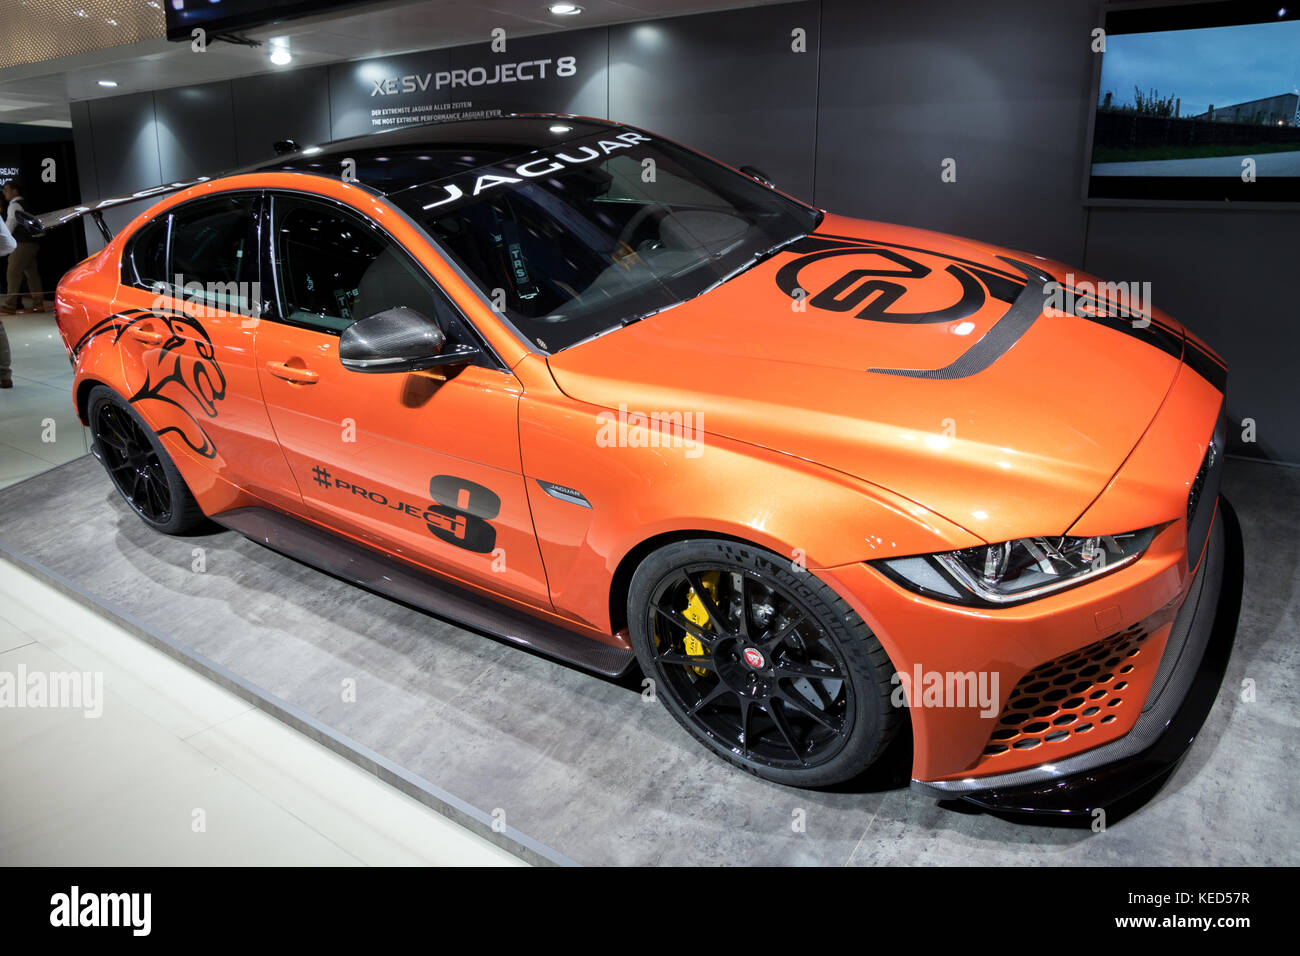 FRANKFURT, GERMANY   SEP 12, 2017: Jaguar XE SV Project 8 Sports Car  Showcased At The Frankfurt IAA Motor Show 2017.